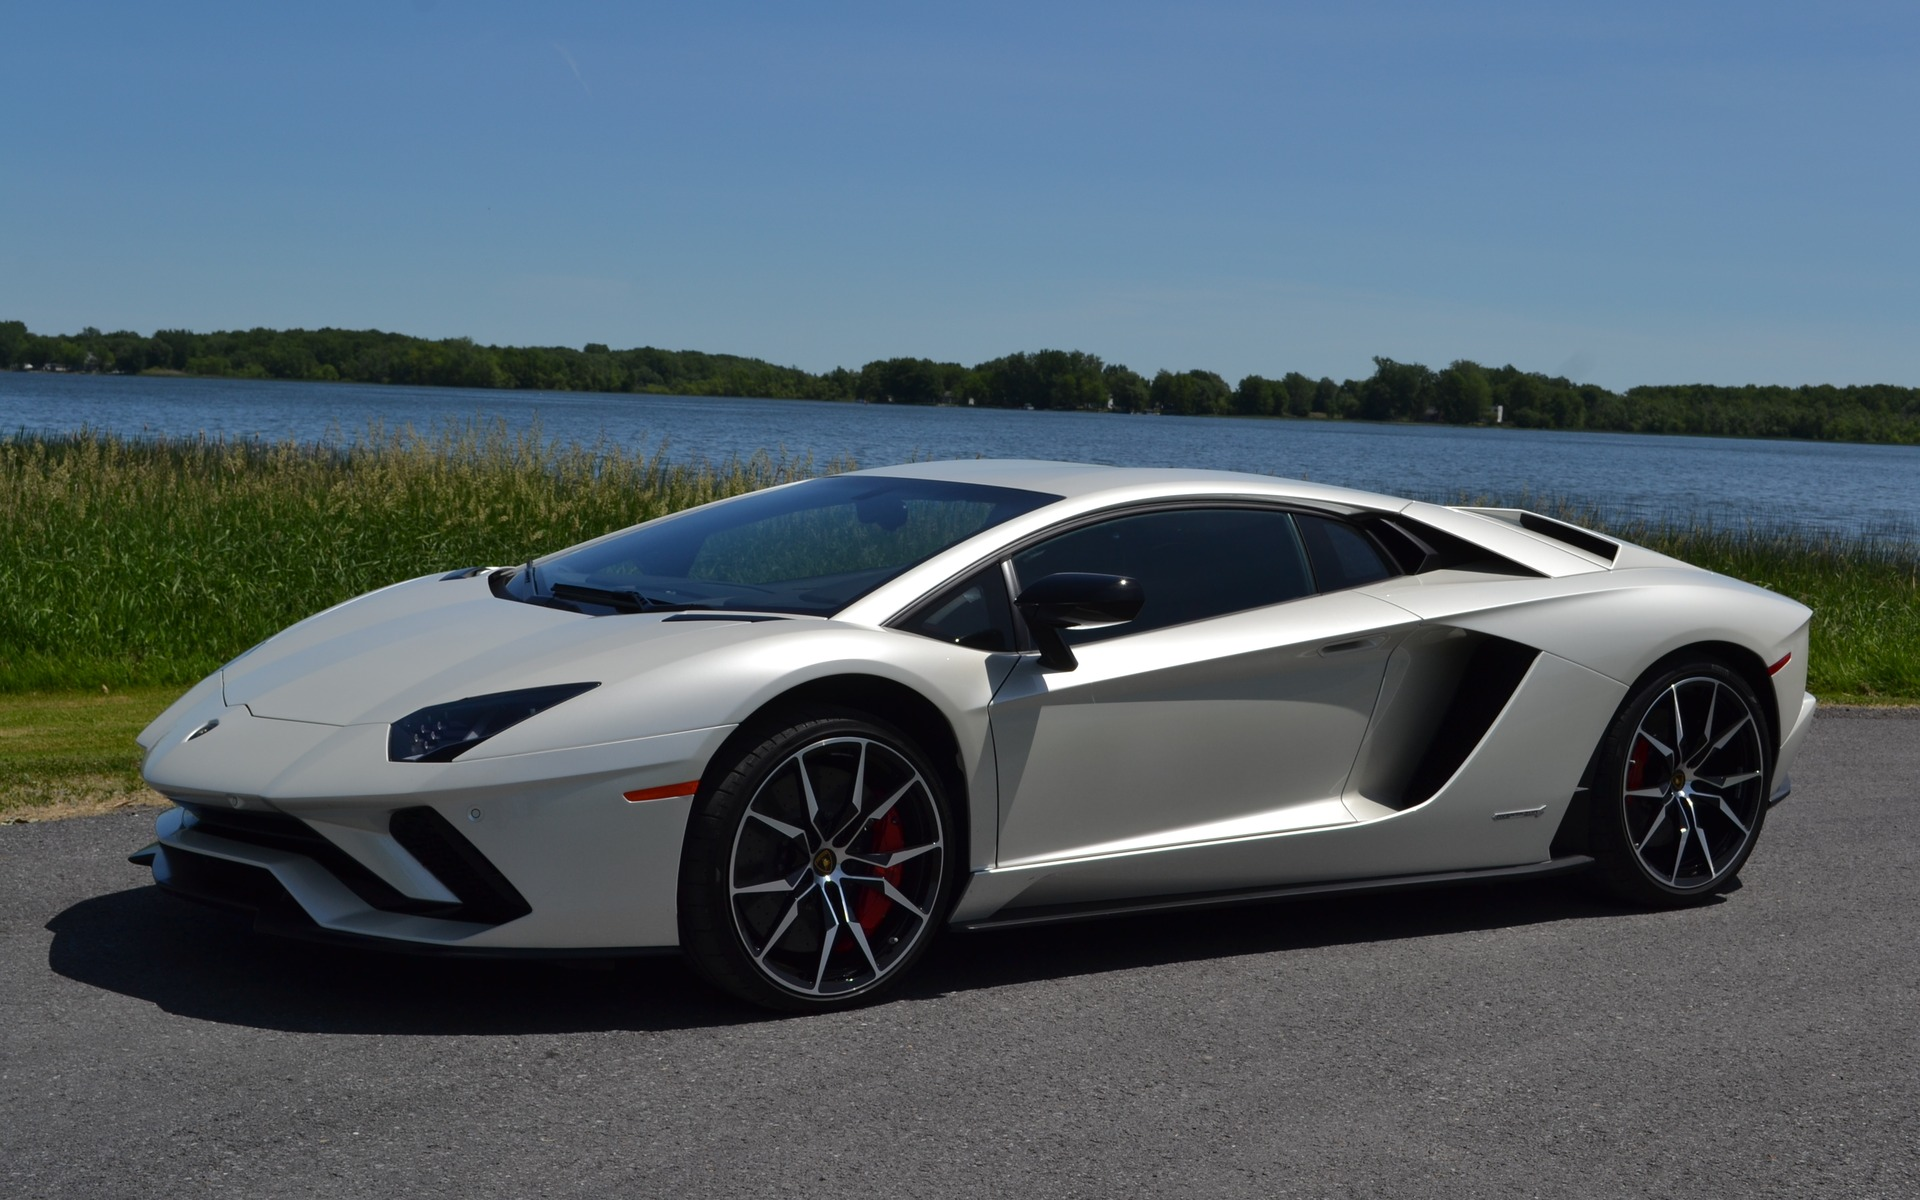 2018 lamborghini aventador. interesting lamborghini 2018 lamborghini aventador lp 7404s coupe specifications  the car guide intended lamborghini aventador n